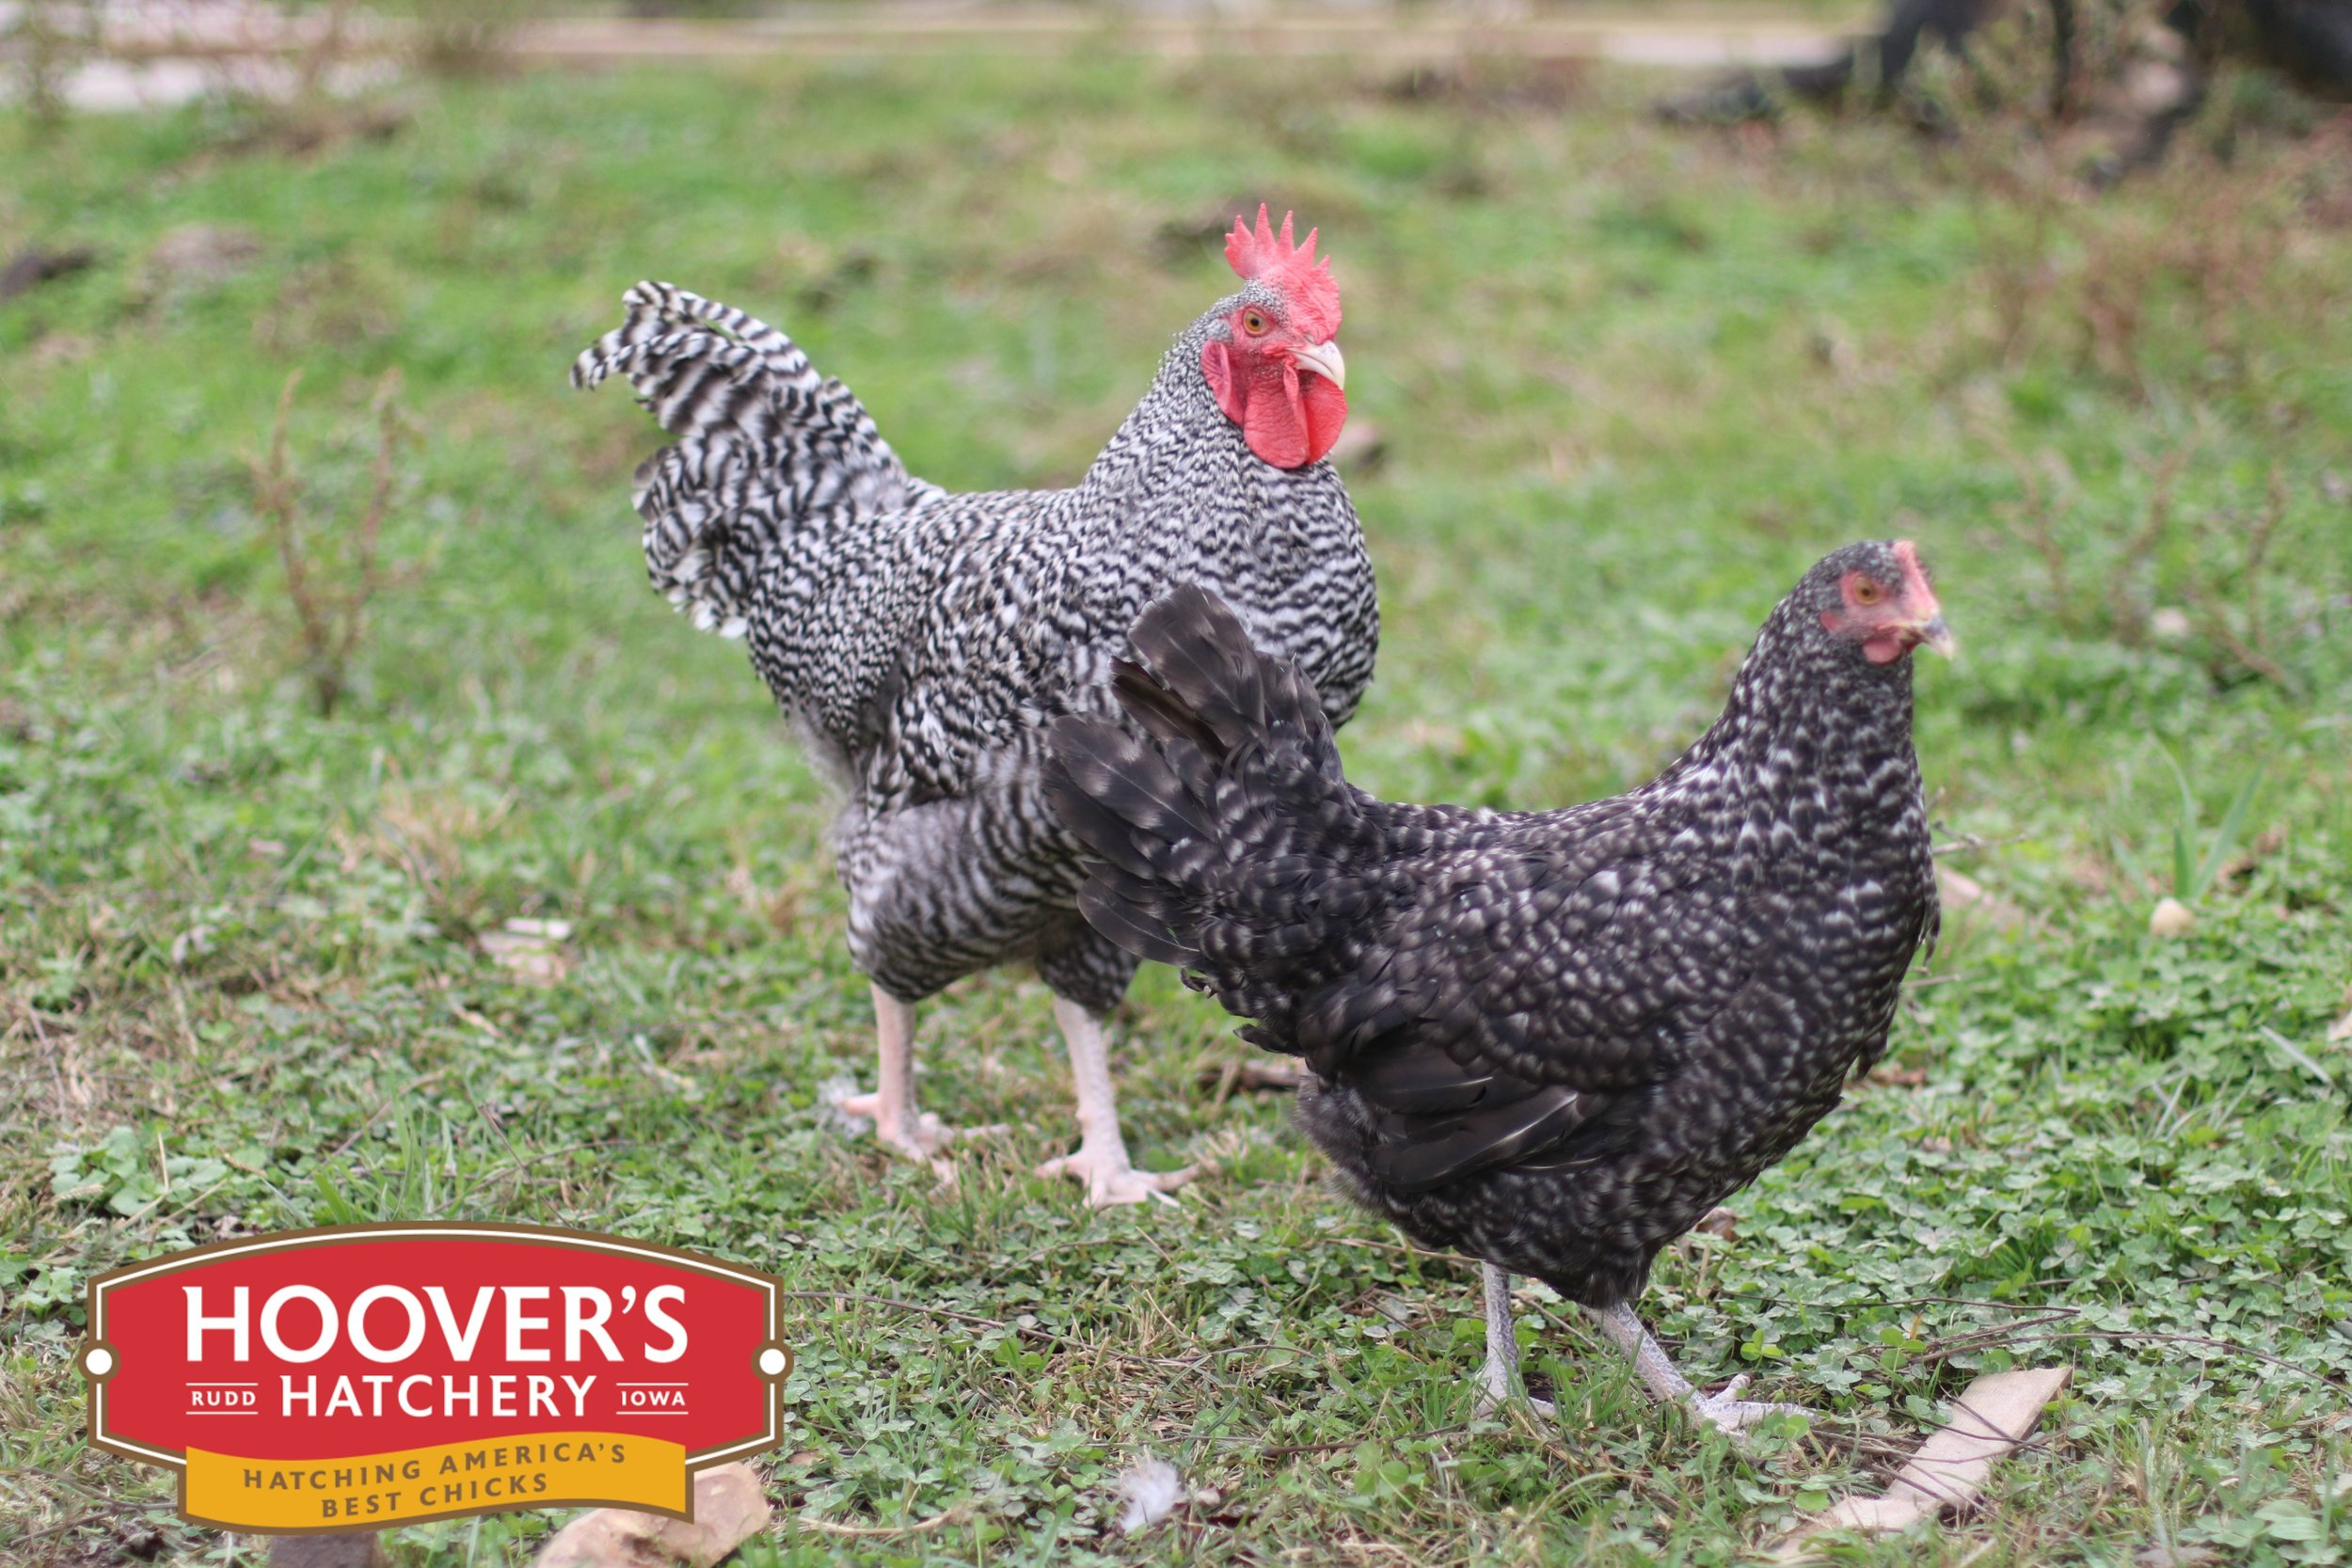 Cuckoo Maran - The Maran breed originates from a town called Marans, France. It is a very winter hardy breed with a docile temperament. They tend to be more athletic, taking to foraging and free ranging more often than other breeds. Marans lay dark brown and dark speckled eggs. These tough birds make a great addition to any backyard flock. APPROX. 200 MEDIUM EGGS/YEAR | EGG COLOR: BROWN | MATURE WT: MALE 6 LBS. FEMALE 4.5 LBS.